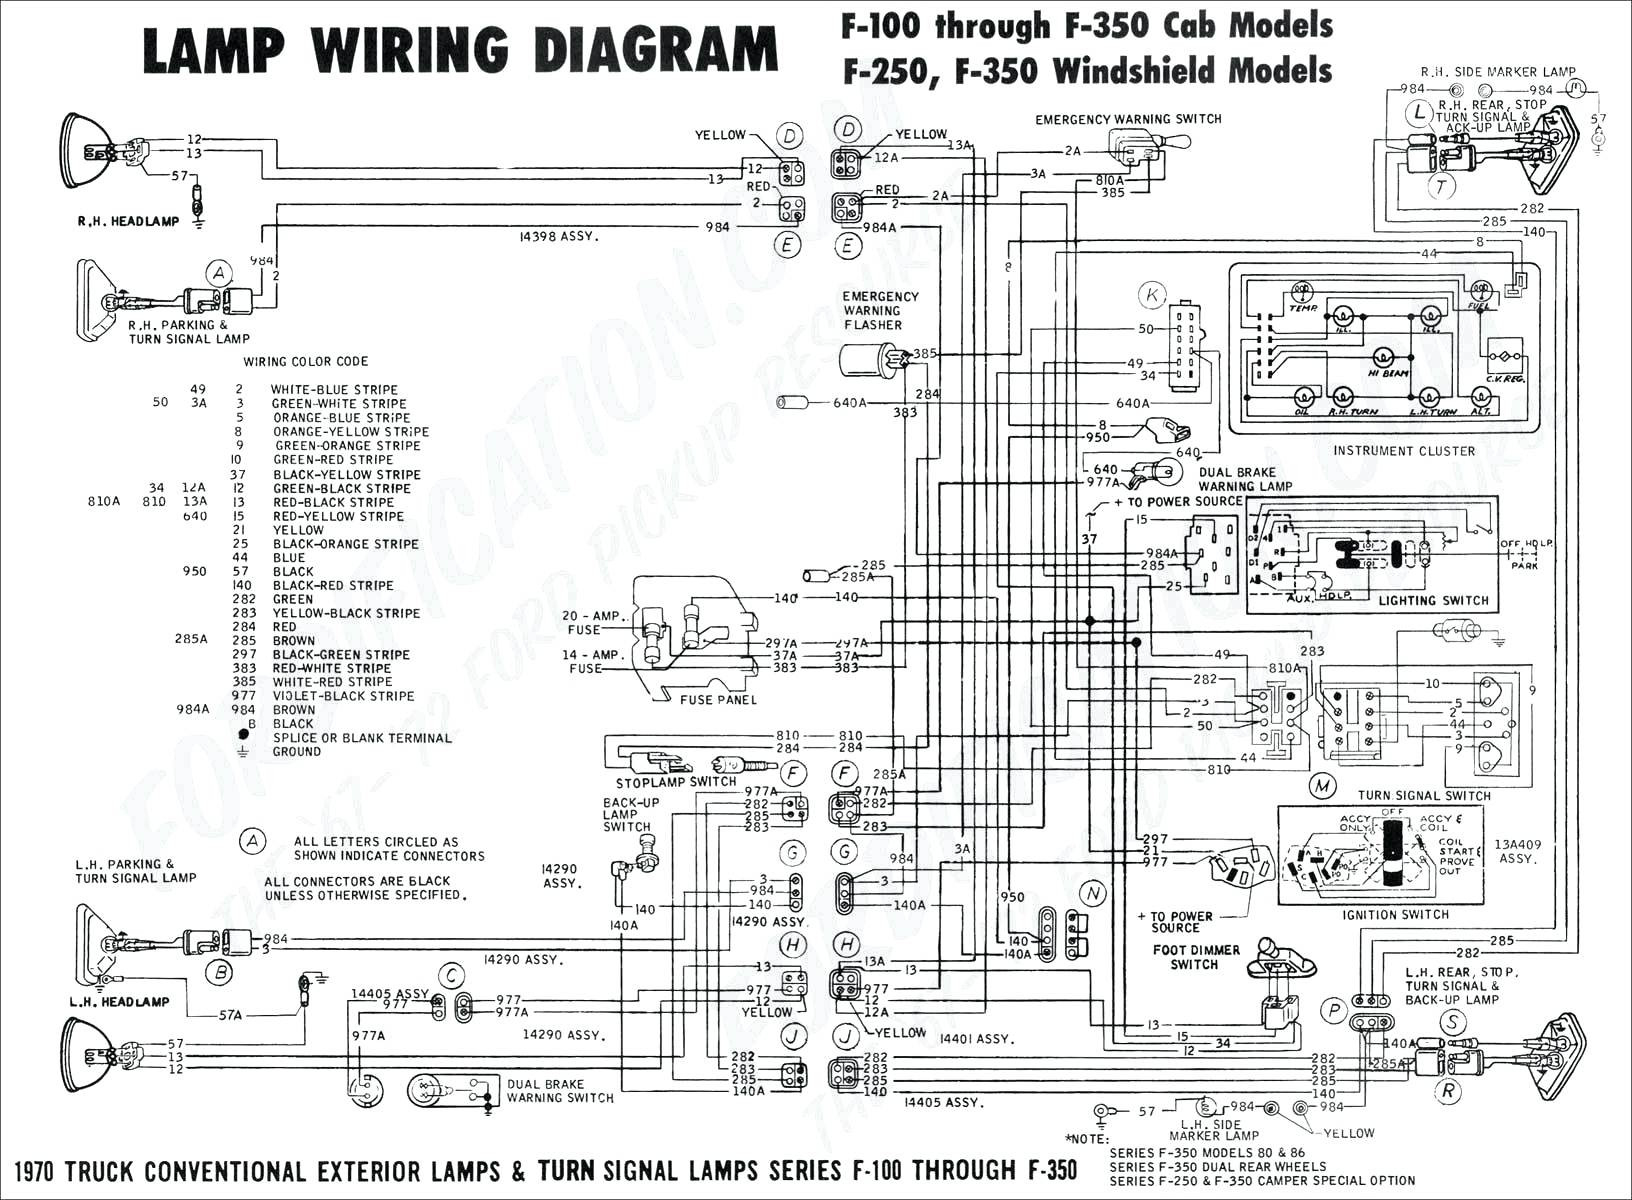 Peterbilt 379 Starter Wiring Diagram New 2001 Peterbilt 379 Wiring - Peterbilt 379 Wiring Diagram